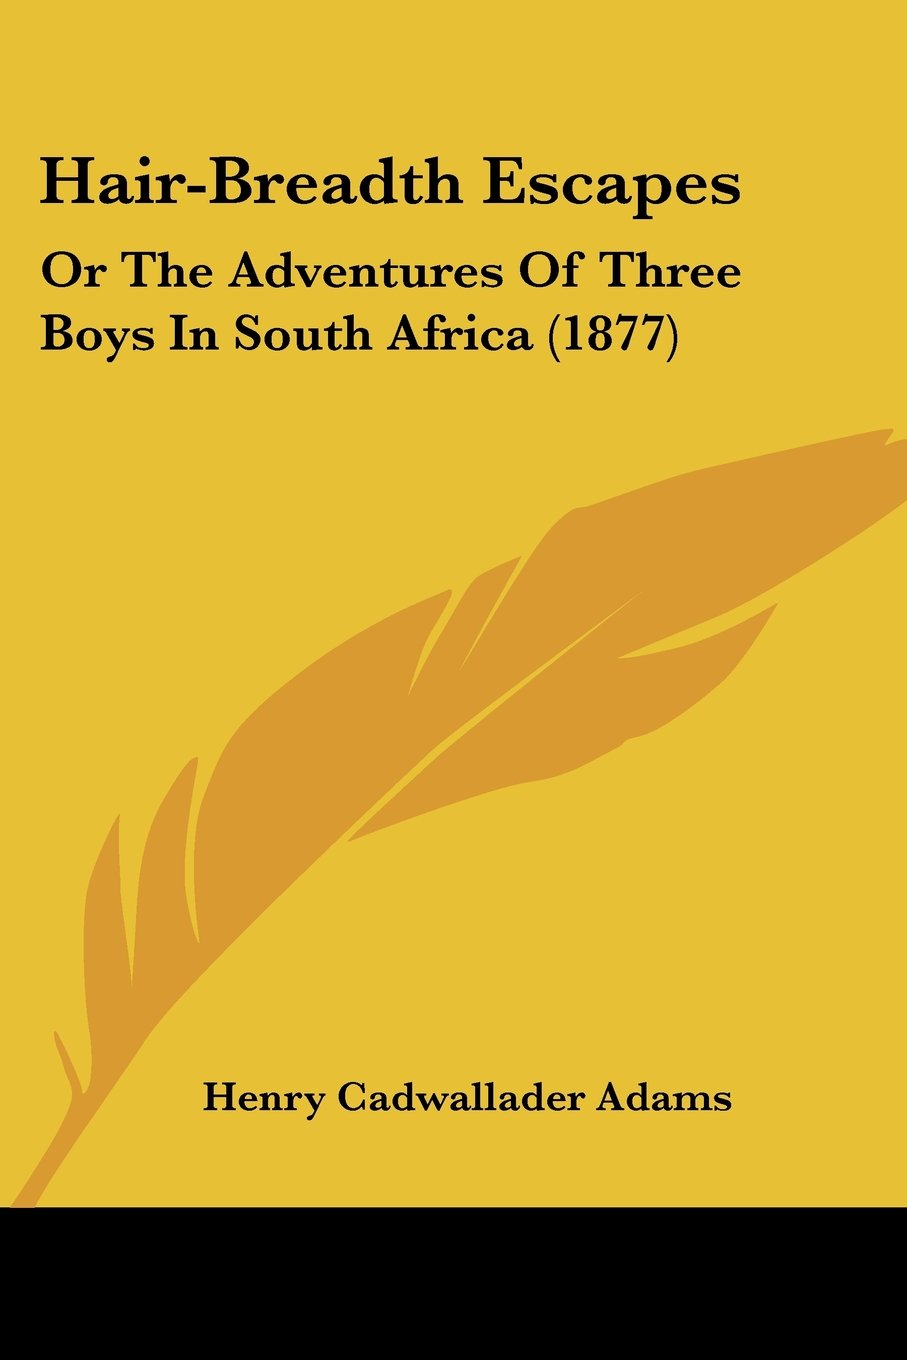 Hair-Breadth Escapes: Or The Adventures Of Three Boys In South Africa (1877) pdf